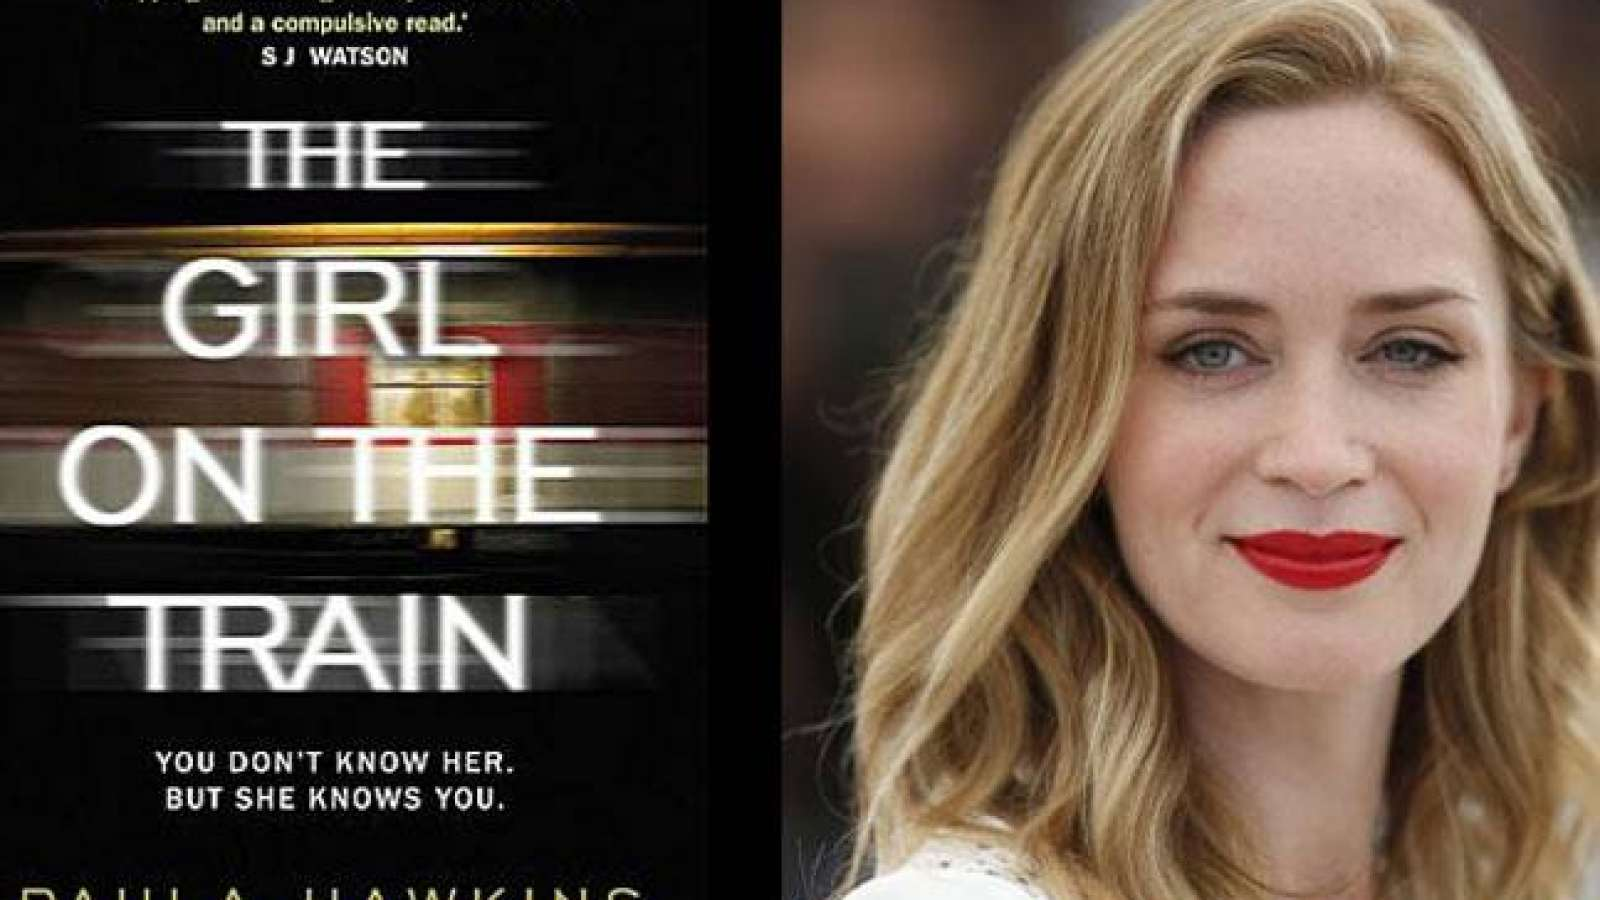 The Girl on the Train upcoming movie